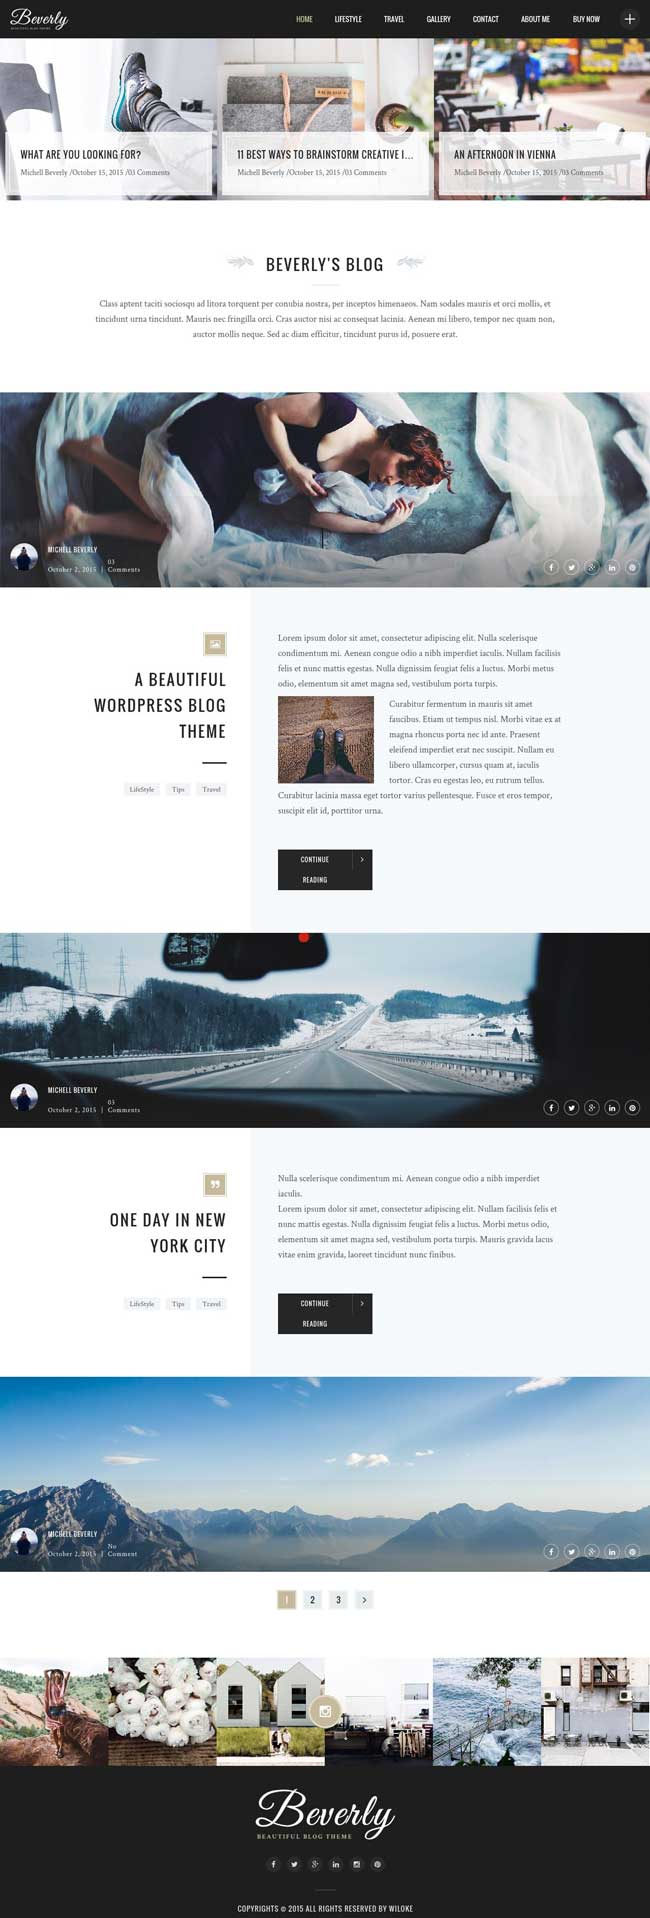 Beverly-Modern-Traveler-WordPress-Blog-Theme